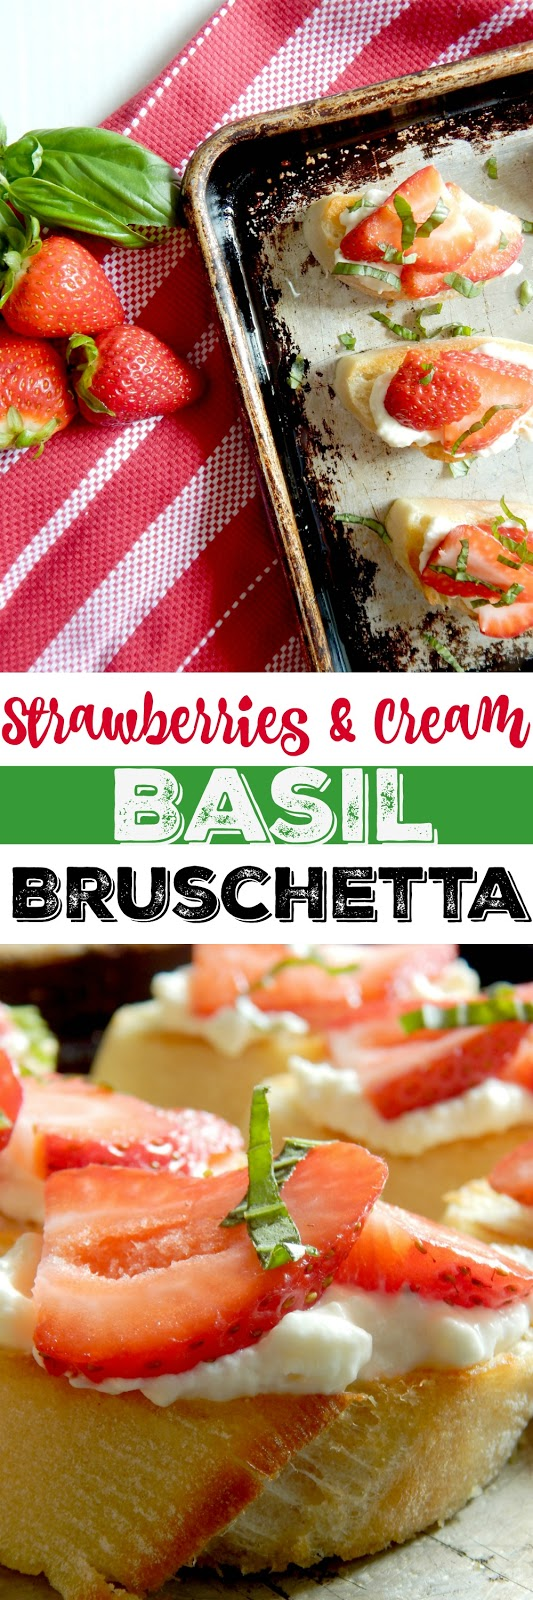 strawberries & cream basil bruschetta